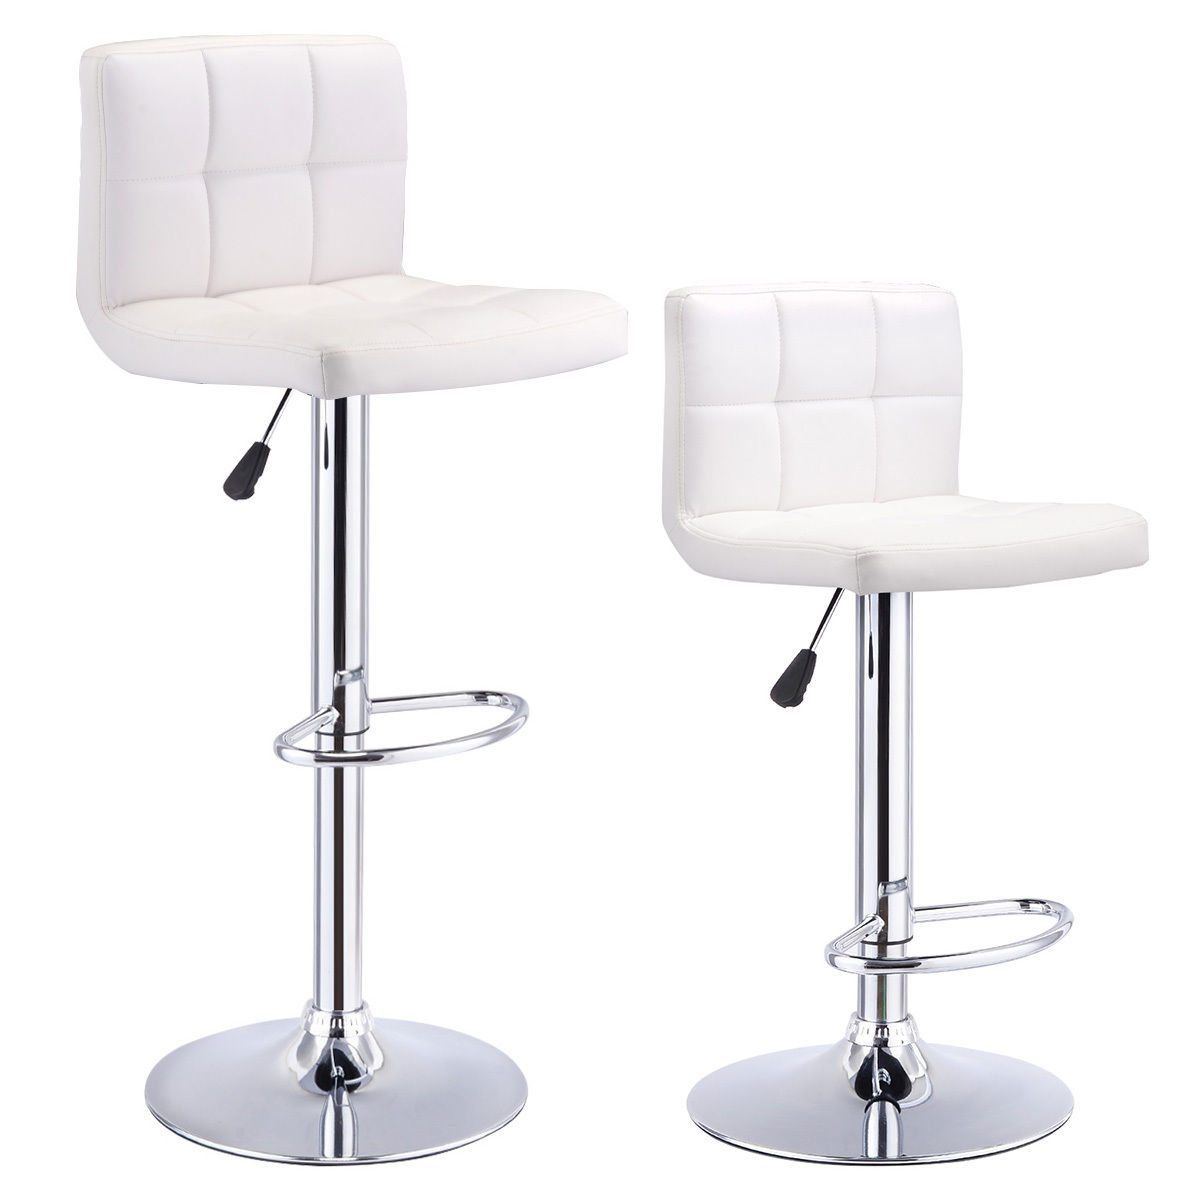 Costway Set Of 2 Bar Stools PU Leather Adjustable Barstool Swivel Pub Chairs White  sc 1 st  Walmart & Adjustable Stools islam-shia.org